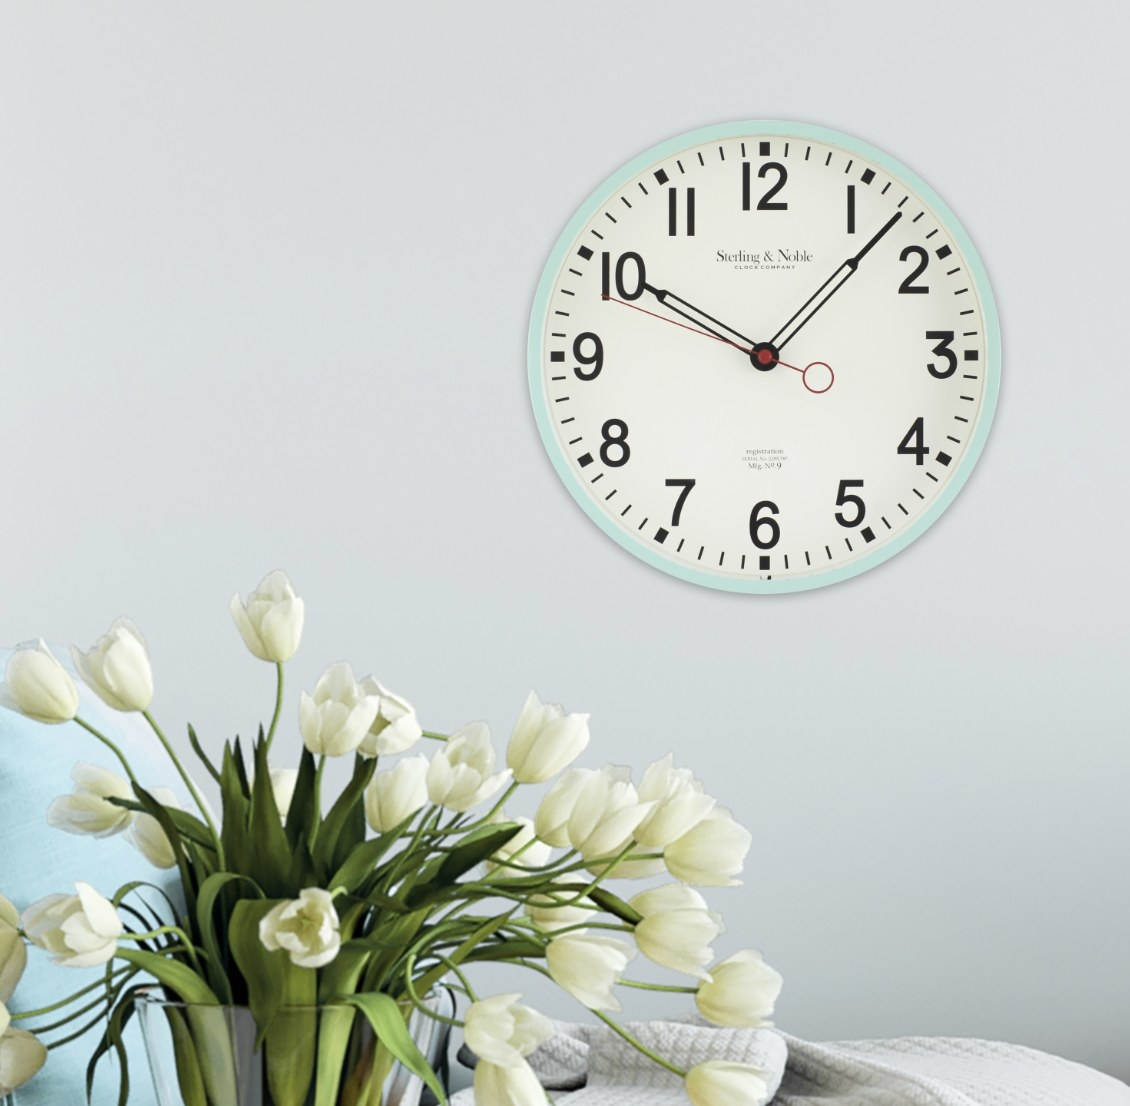 The mint clock is on a bright wall and has black minute hands and red seconds hand